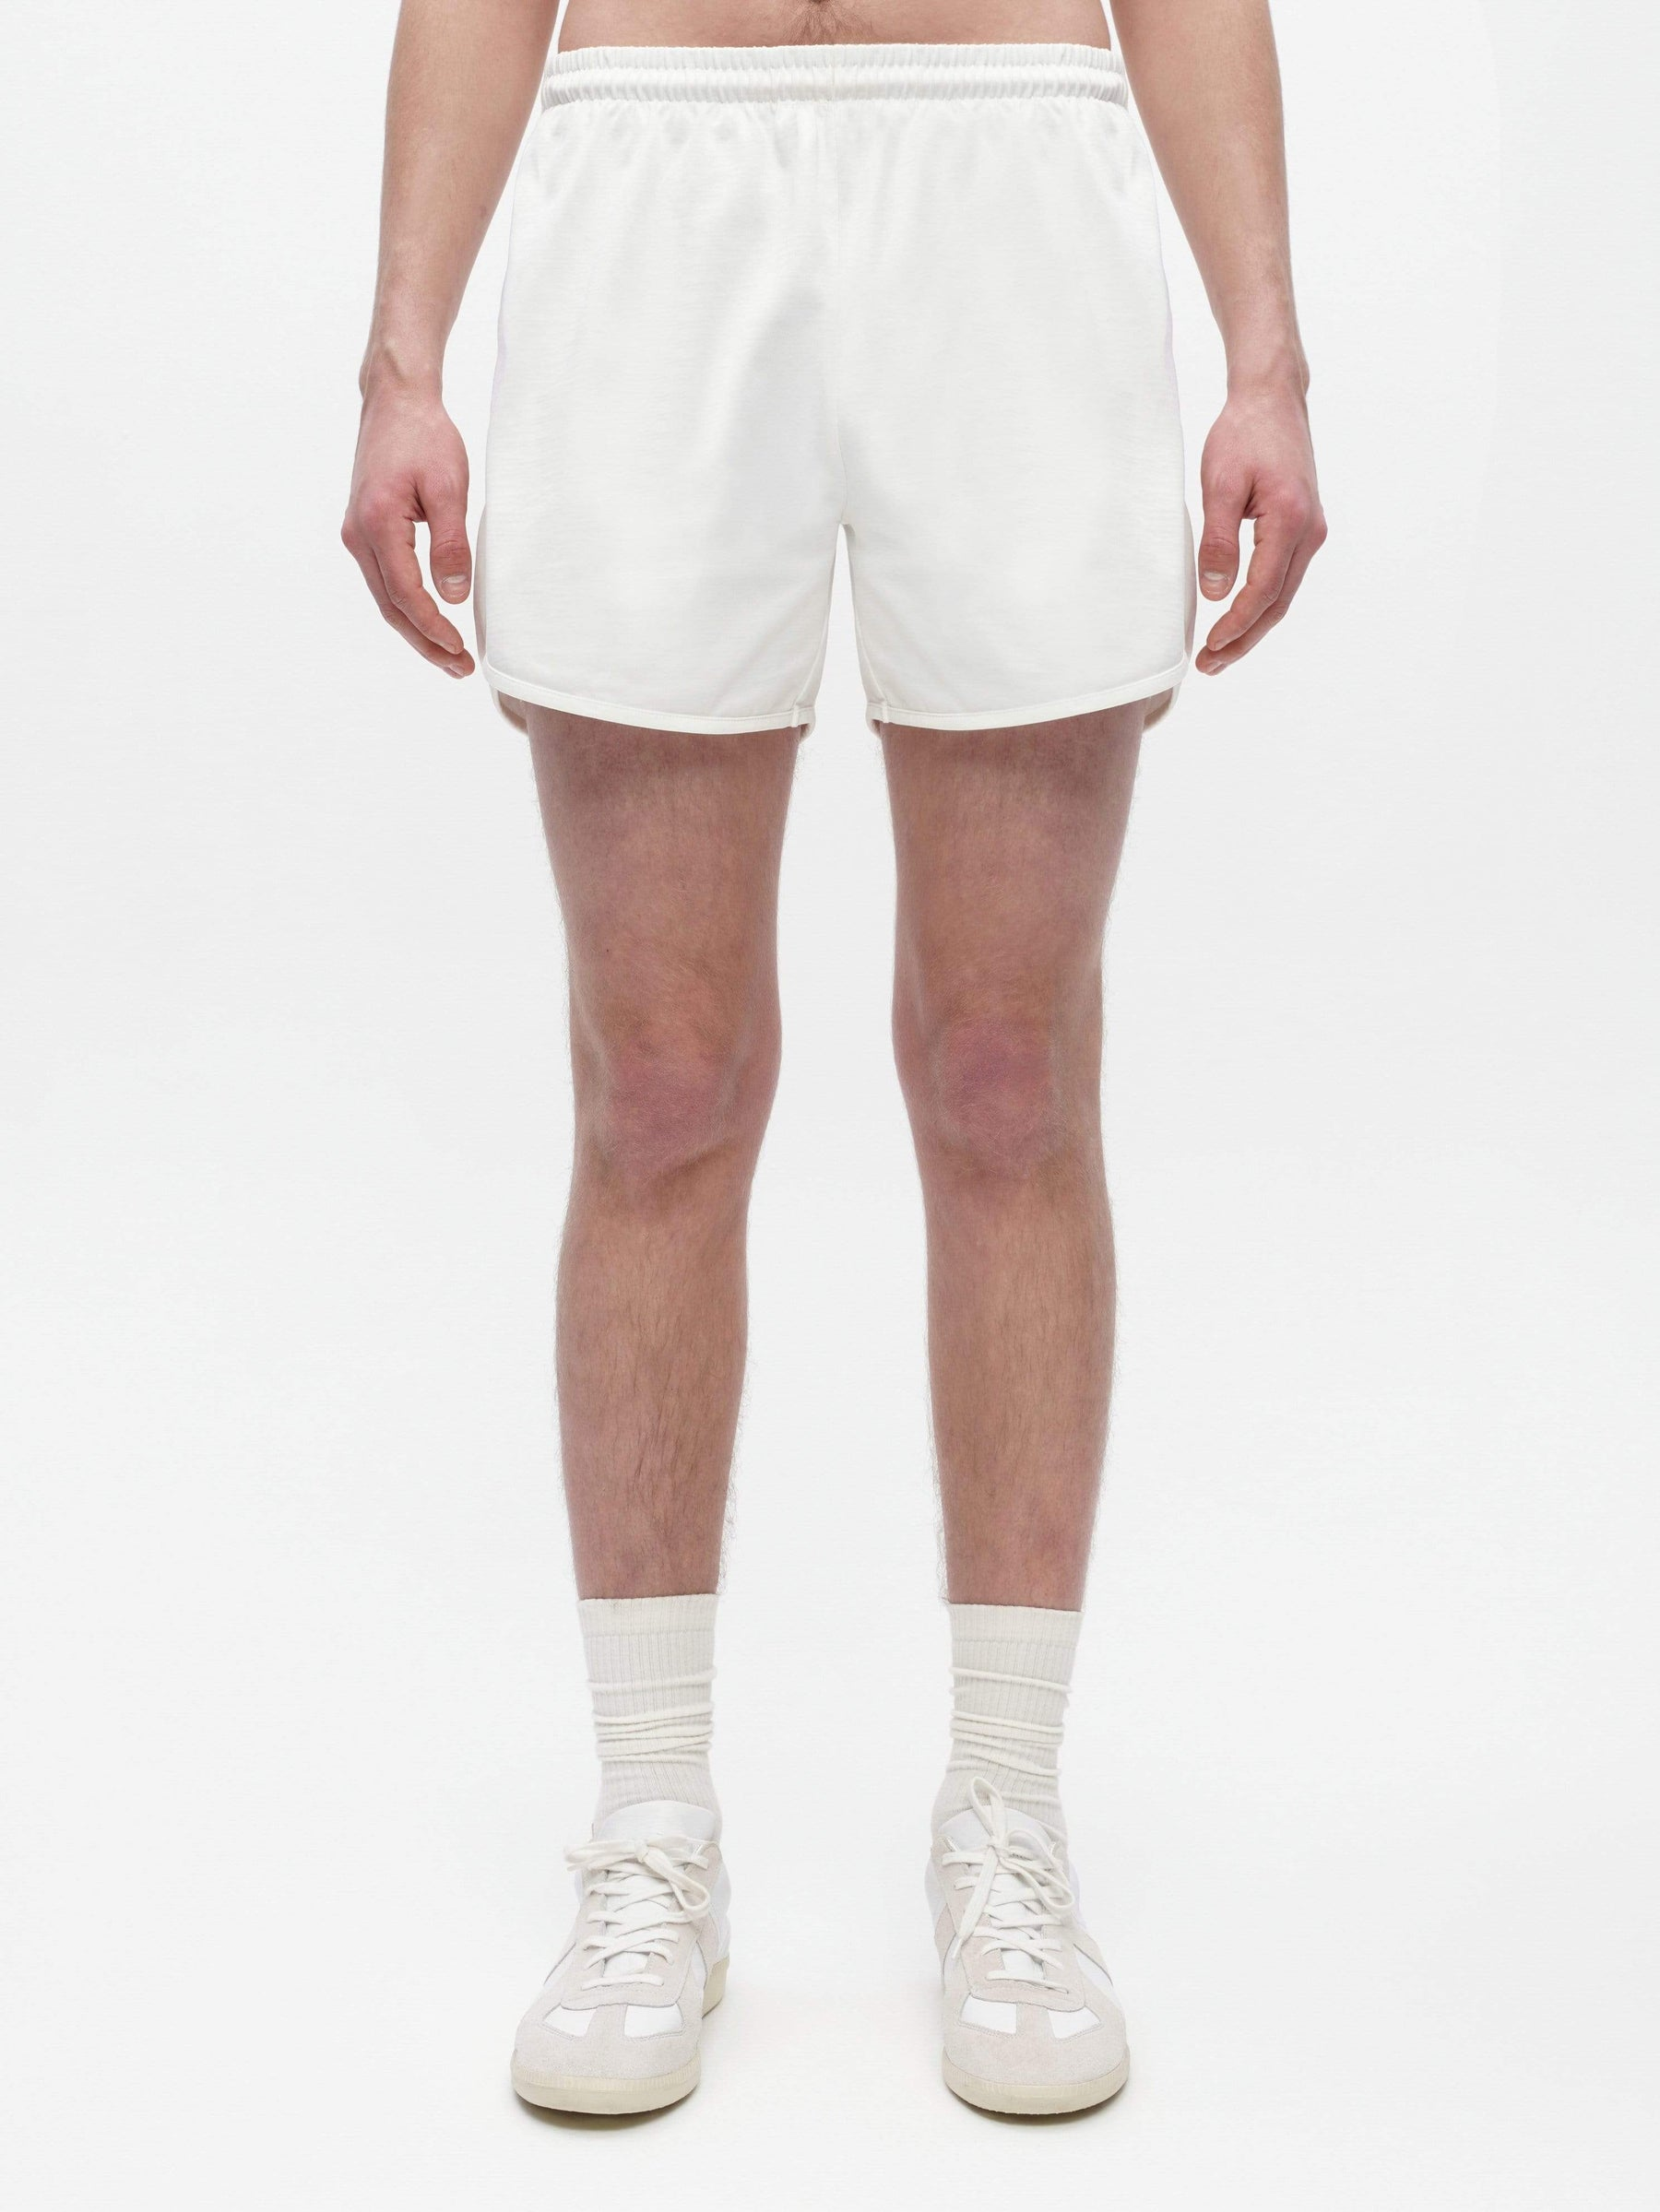 Unisex Loose Running Shorts White